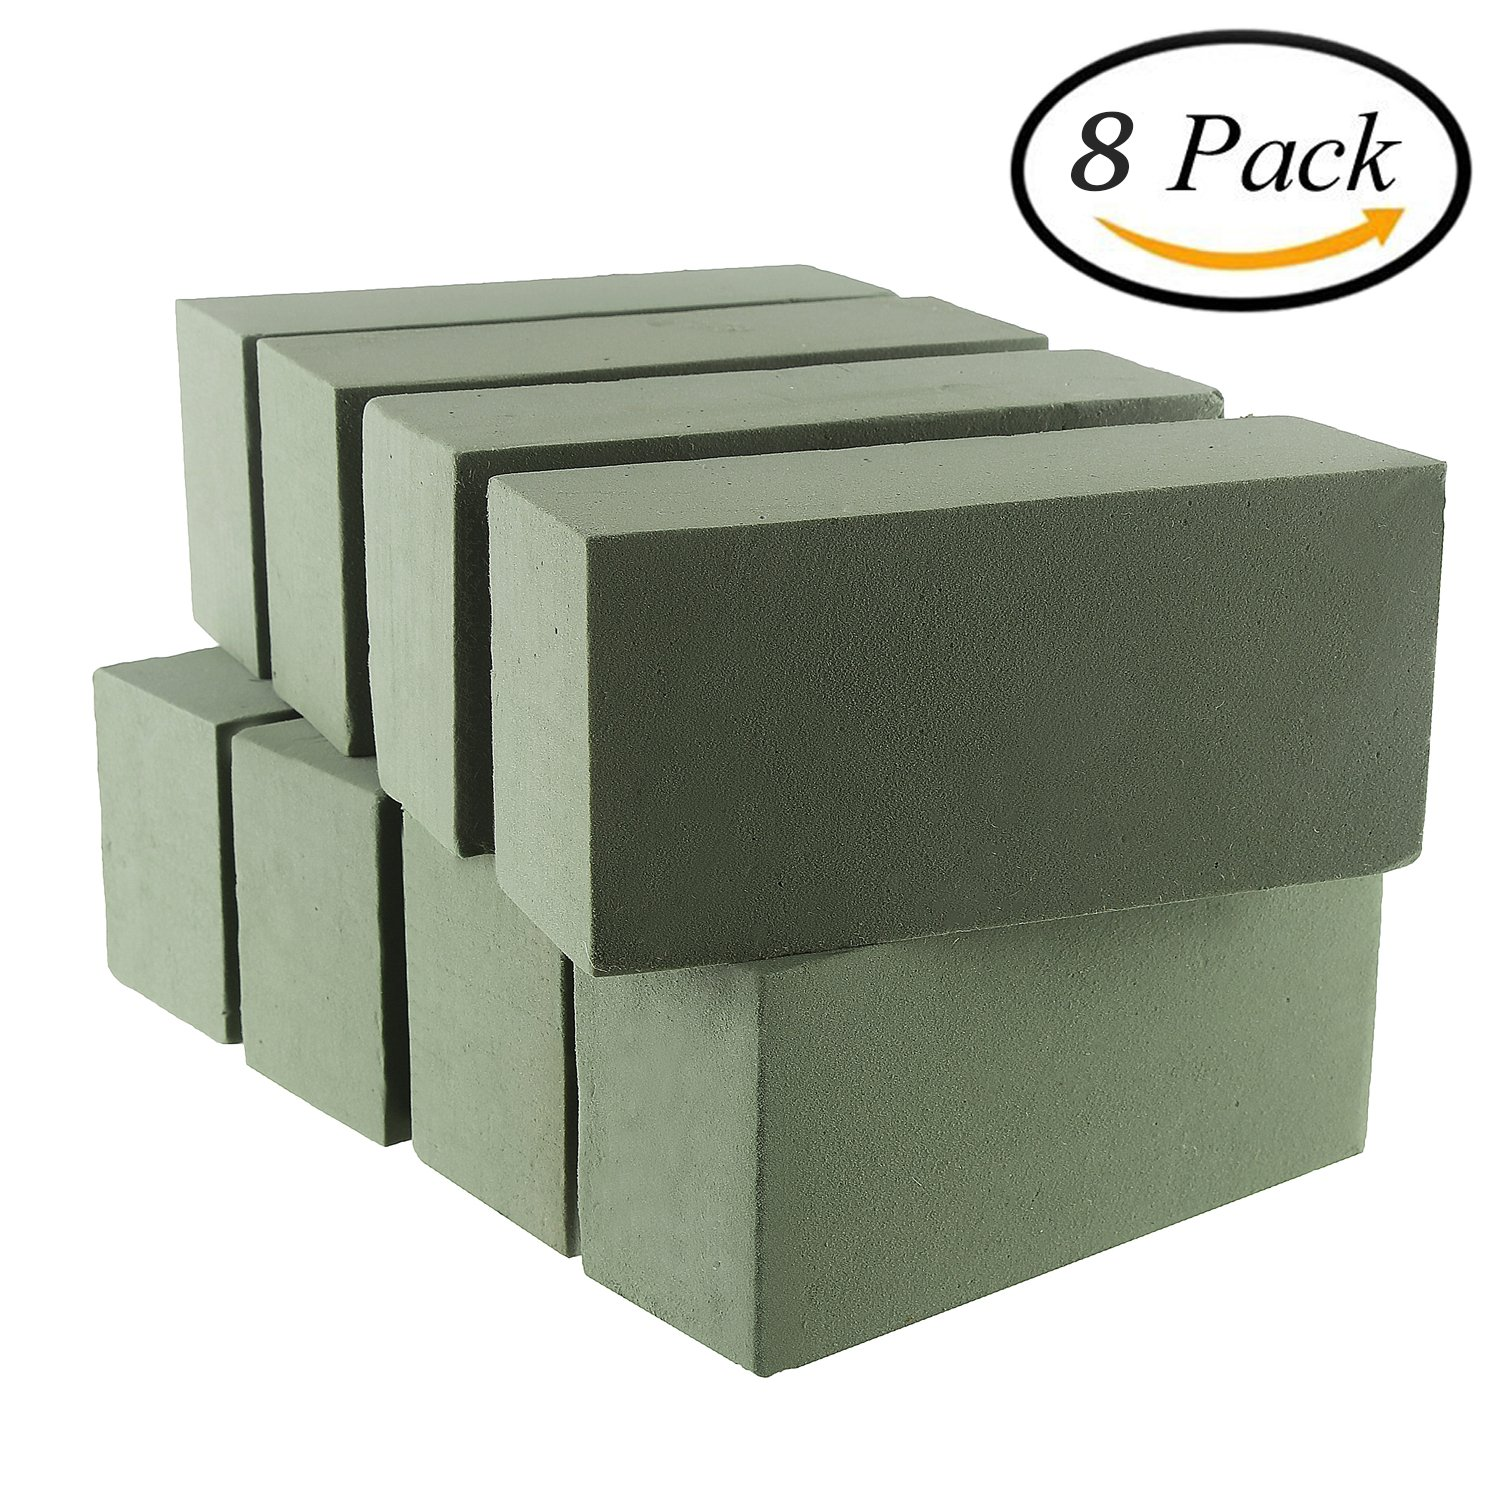 VEYLIN 8 PCS Wet Floral Foam Bricks Green Styrofoam Blocks for Fresh Cut Floral Arrangements